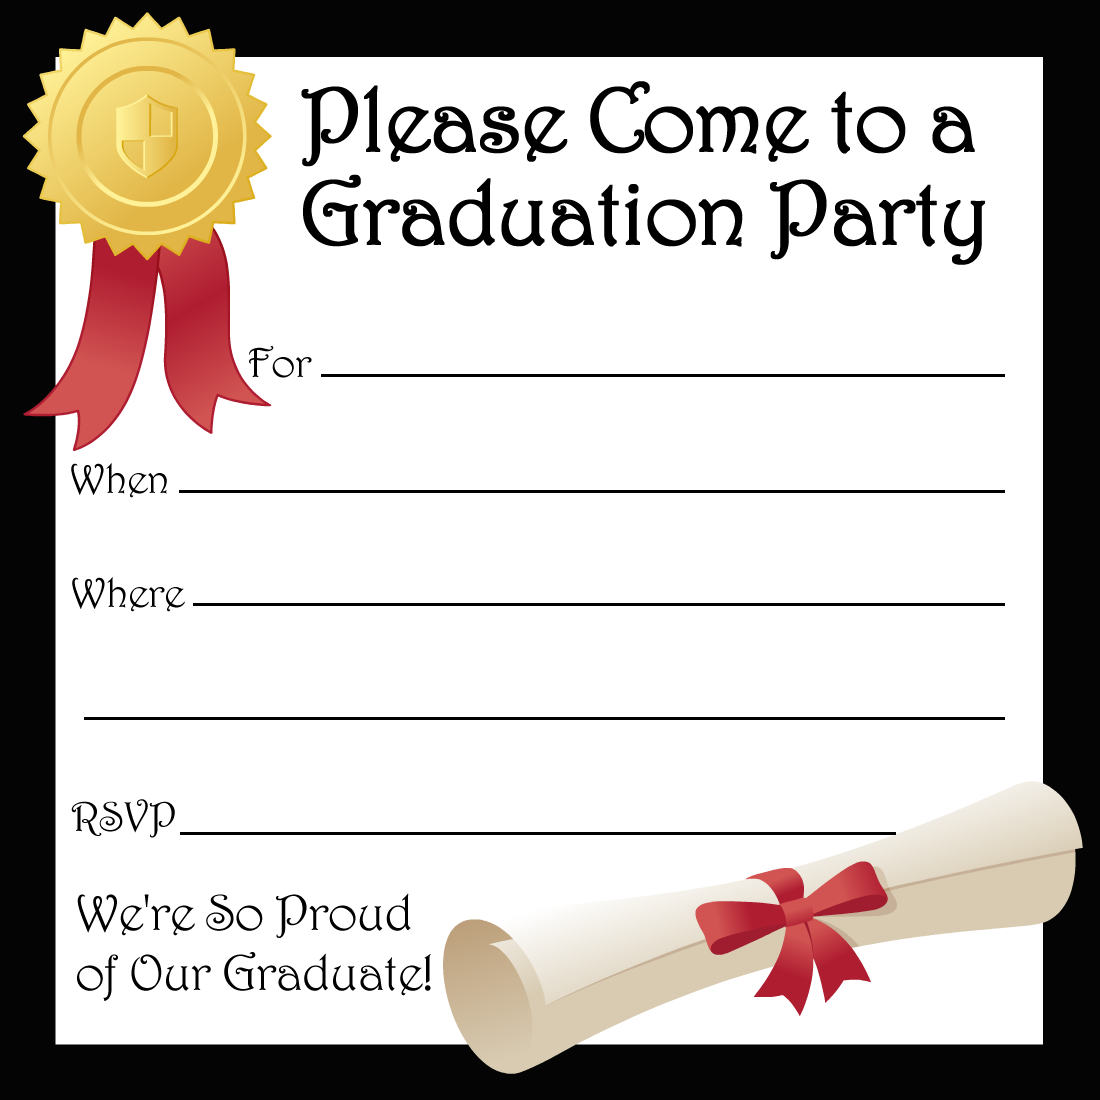 printable graduation party invitations graduation parties printable graduation party invitations